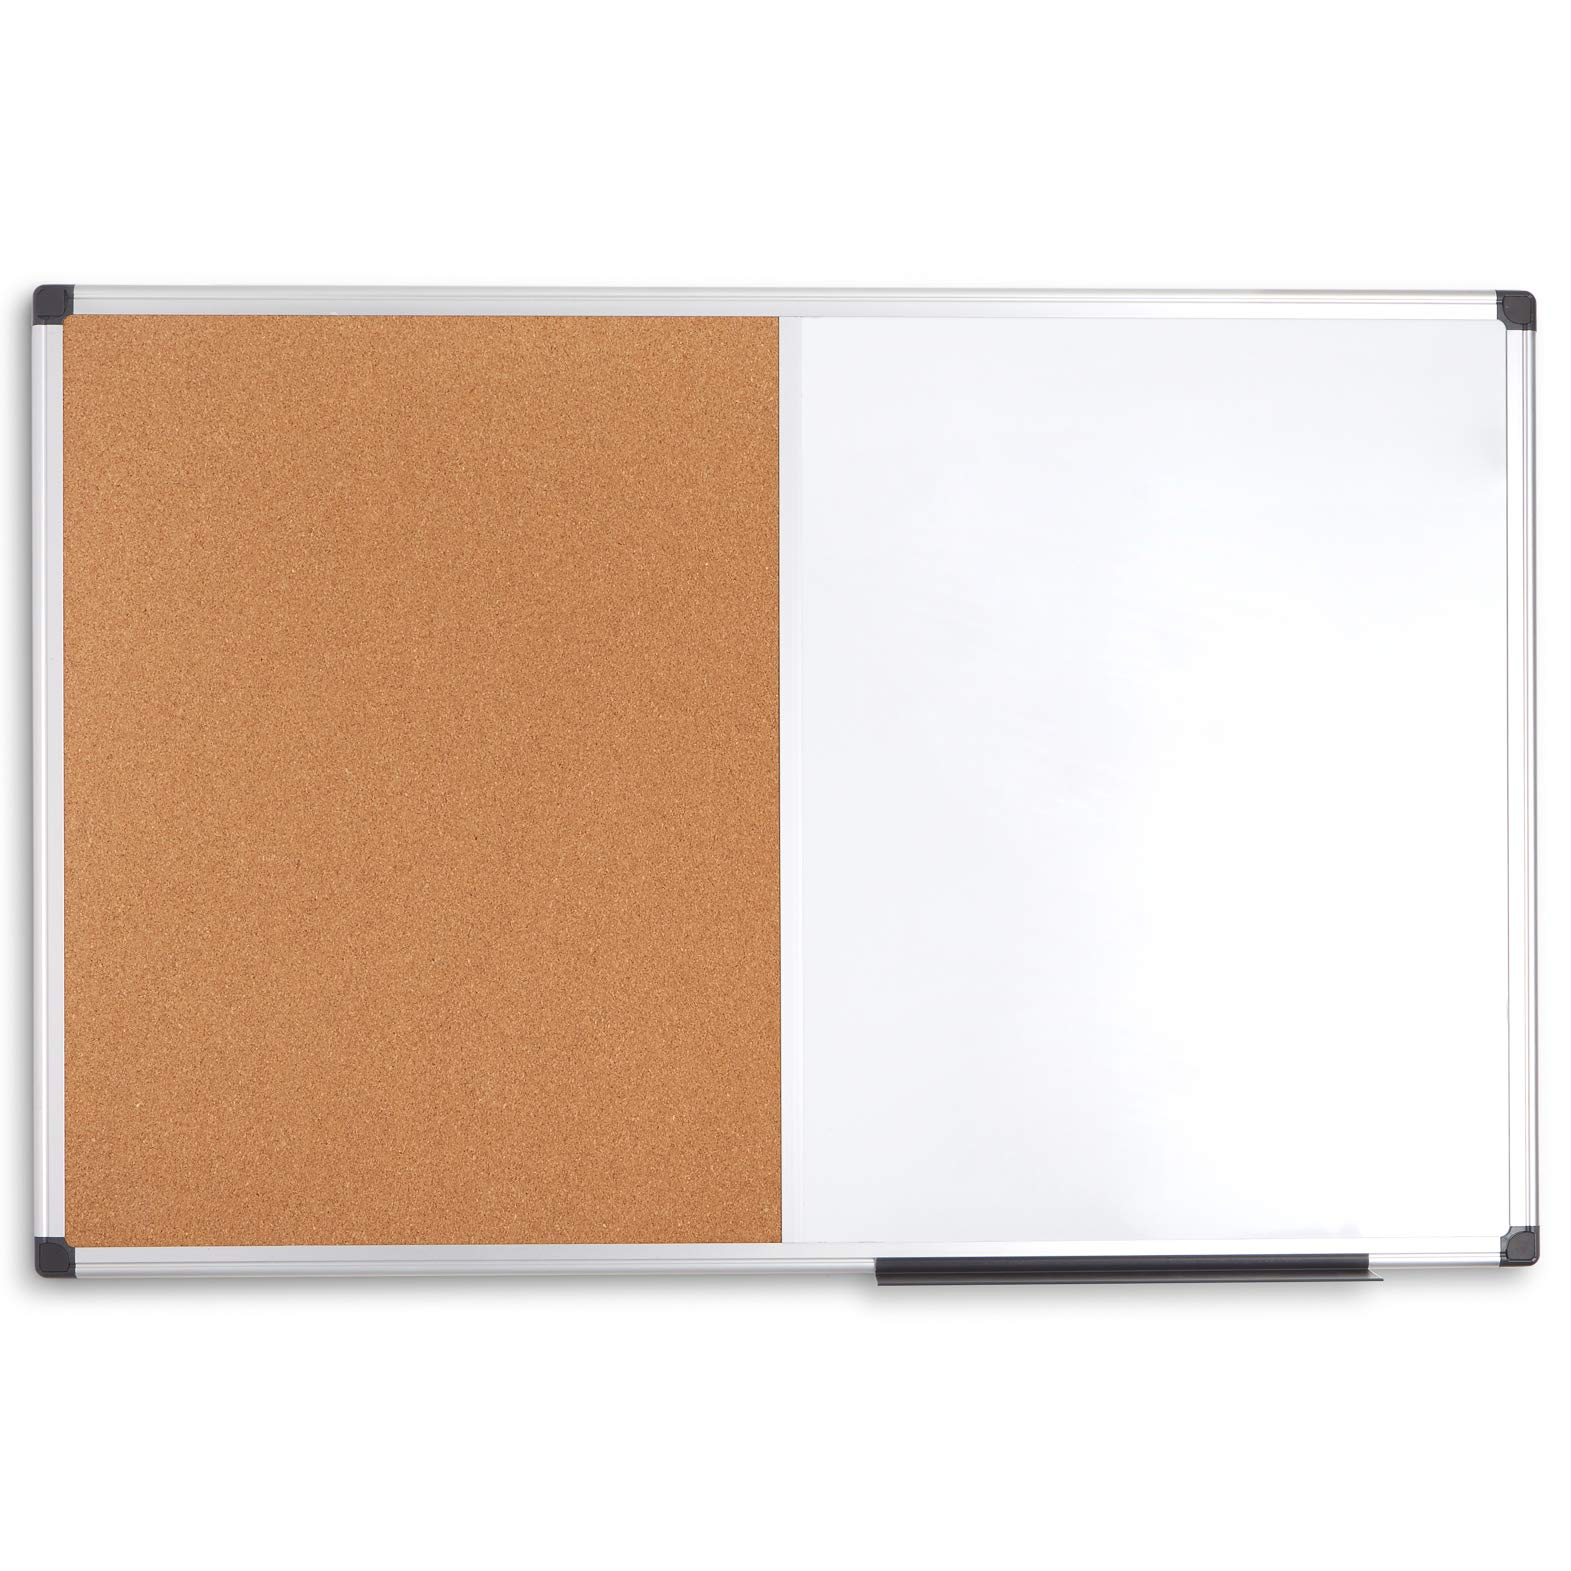 """Blue Summit Supplies 36"""" x 48"""" Combination Magnetic Whiteboard and Corkboard with Aluminum Frame, Melamine Dry Erase and Bulletin Board Combo, Detachable Marker Tray by Blue Summit Supplies (Image #1)"""